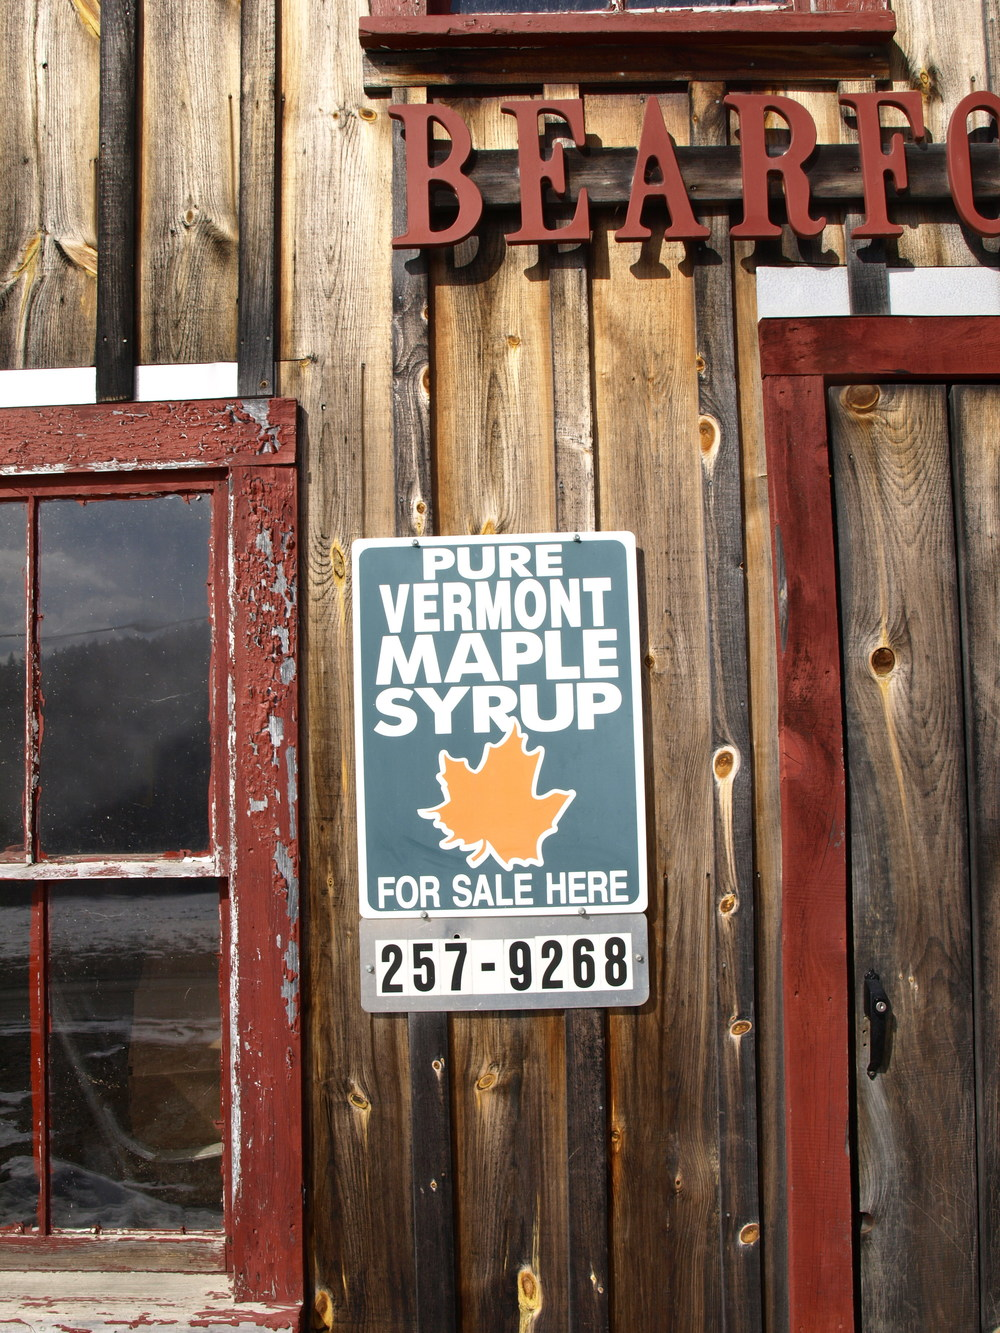 Area code 802. They ship maple syrup if you can't make it in person! But it's a short season, only about 6 weeks, and we're half way through…. so get it fast.